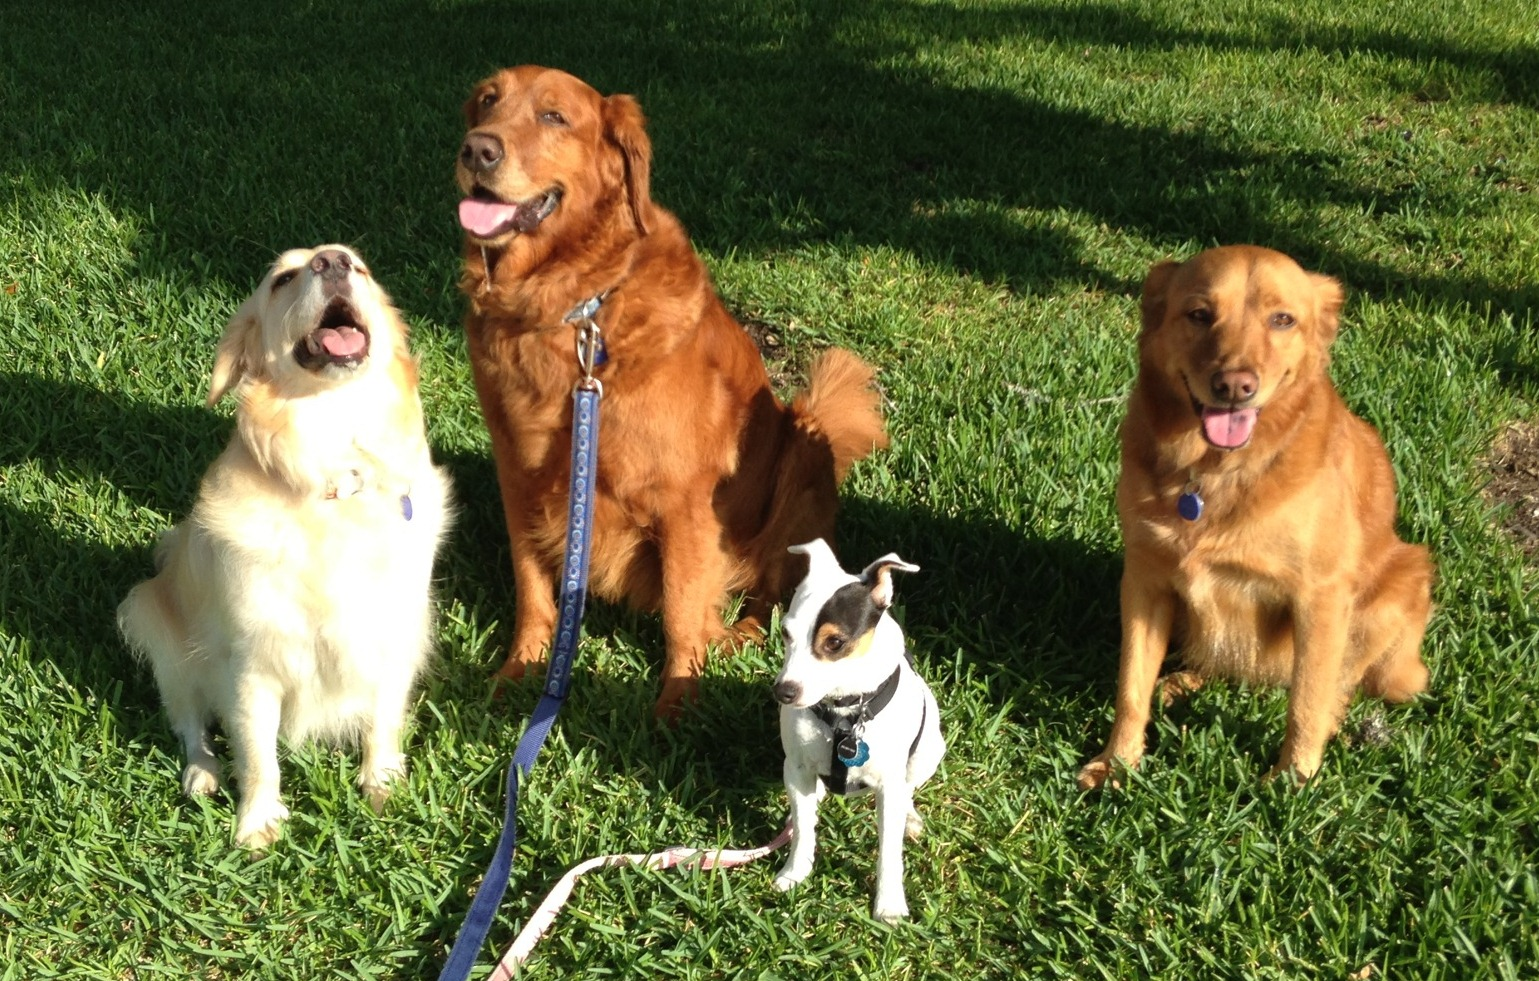 Kacy with 3 of Scott and Sheila's dogs